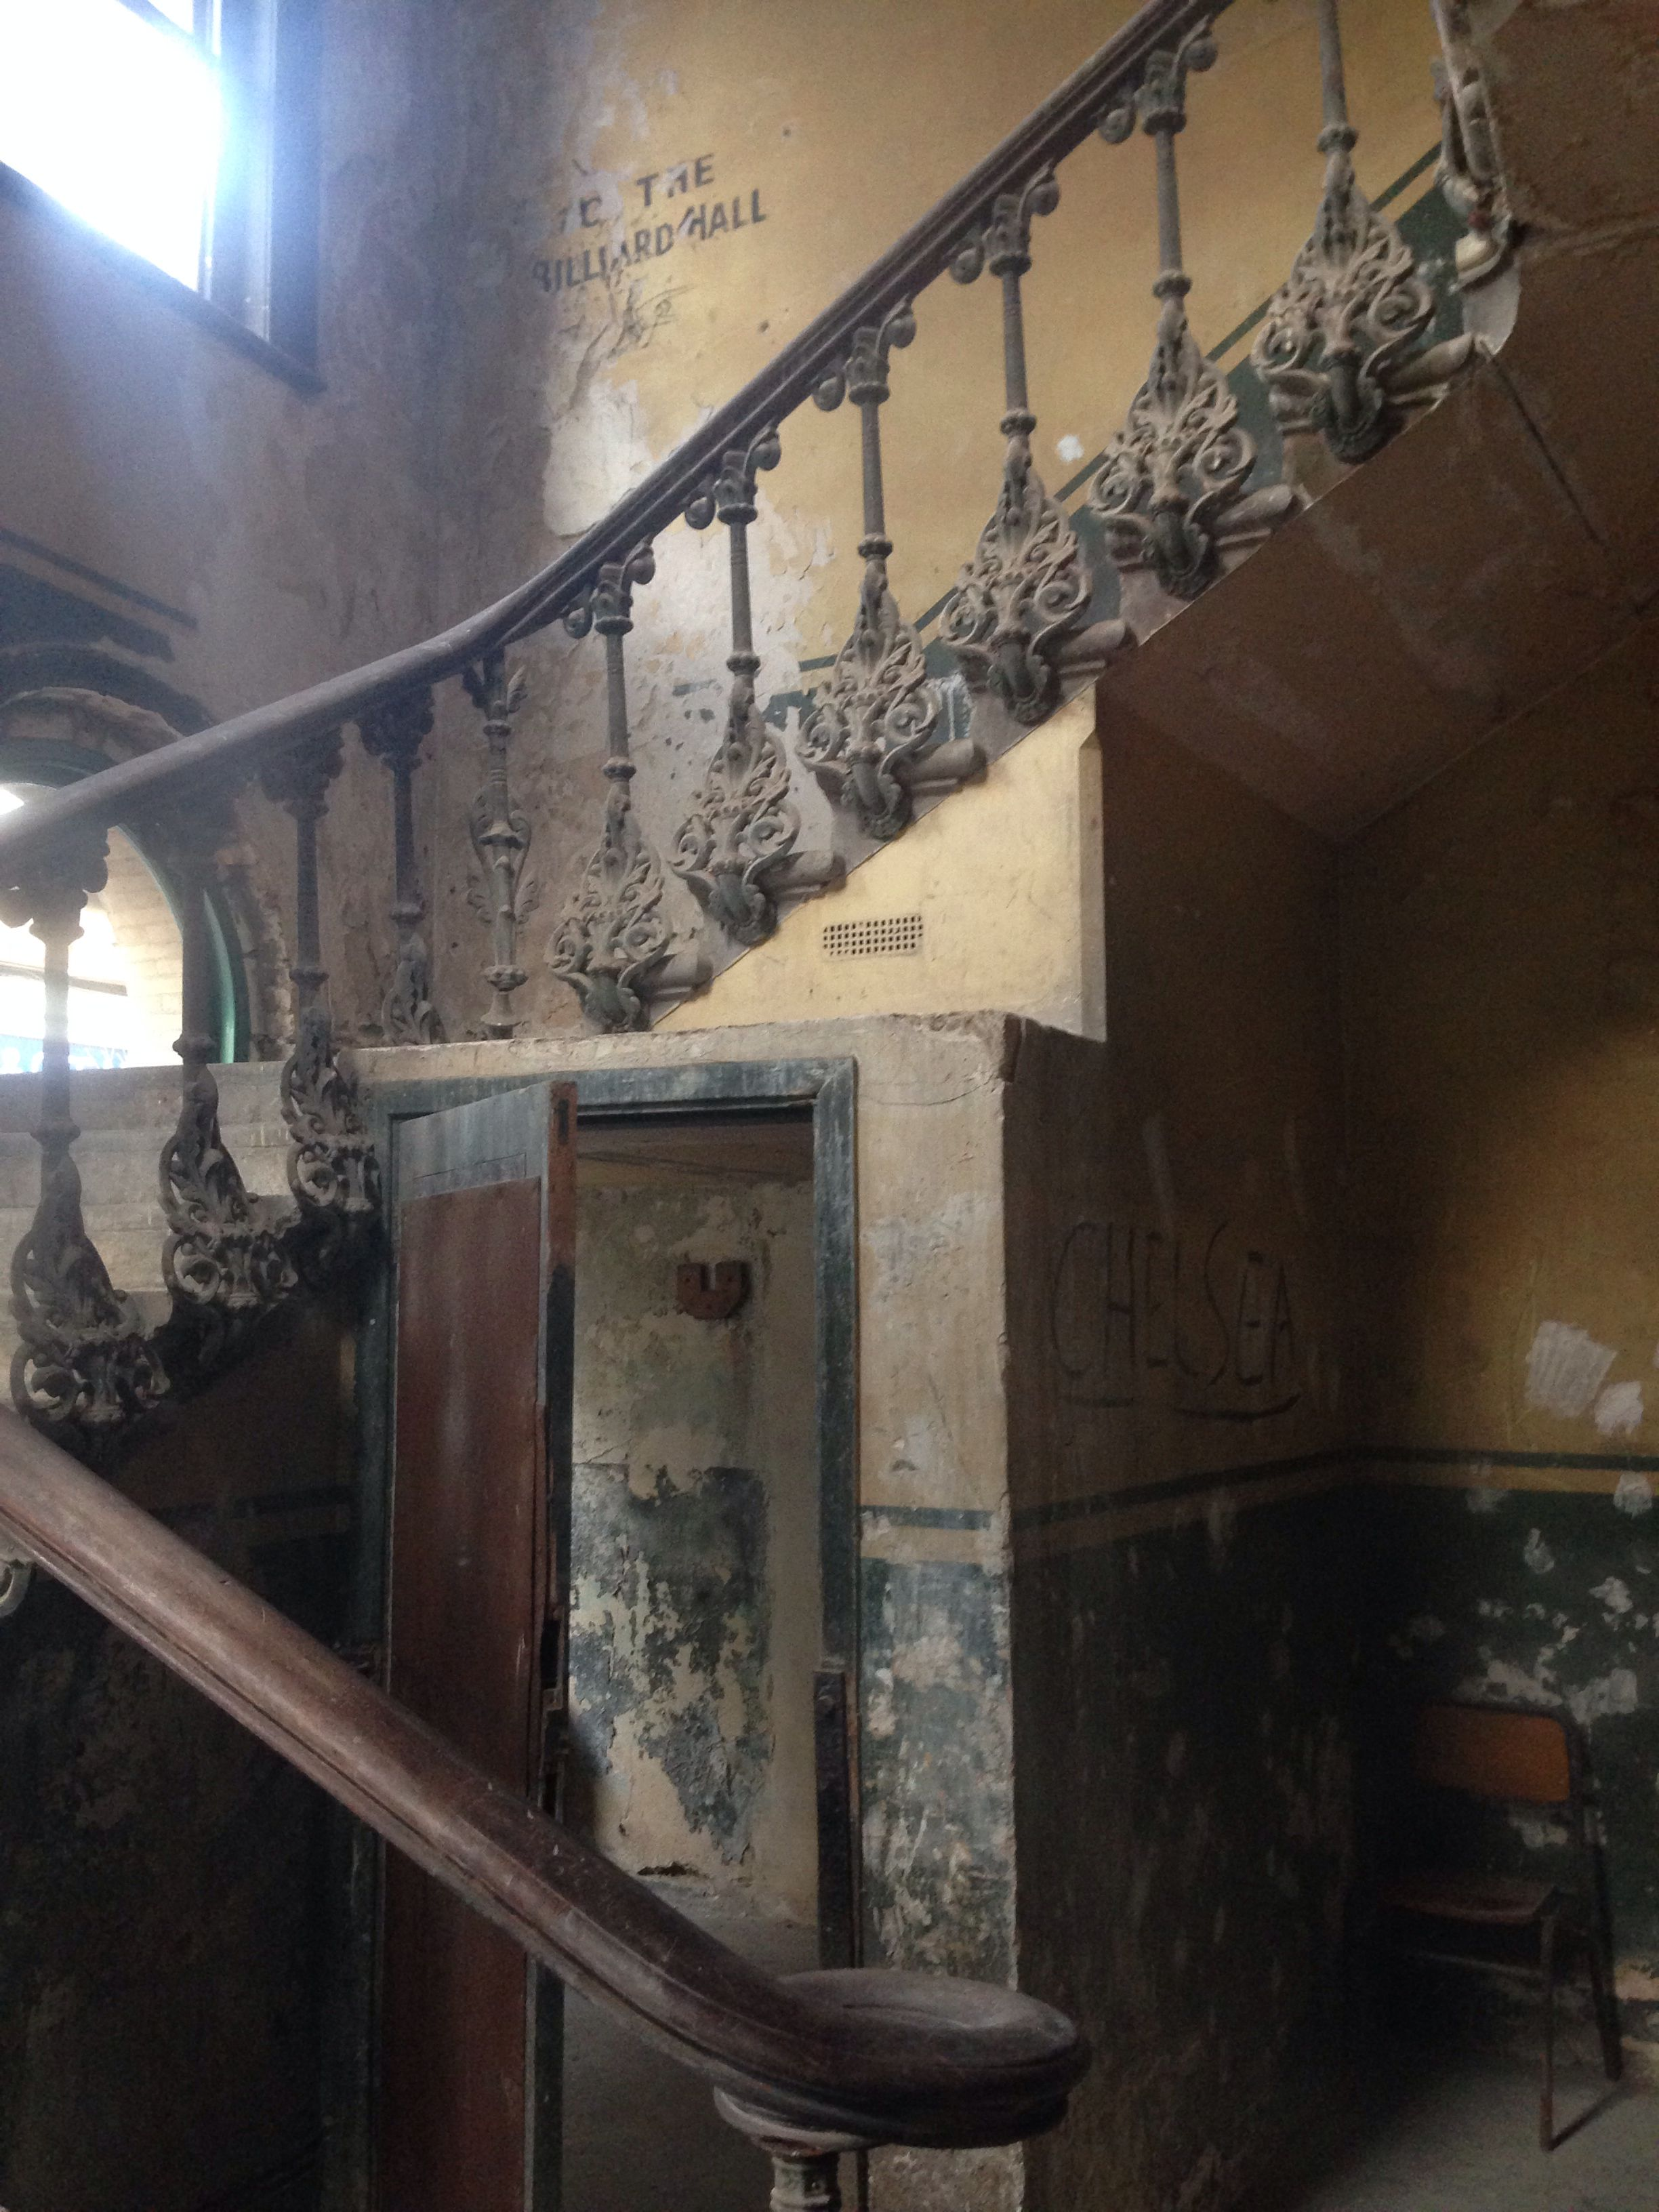 The old staircase at Peckham Rye Station. Note the old billiards hall 'sign' on the wall!